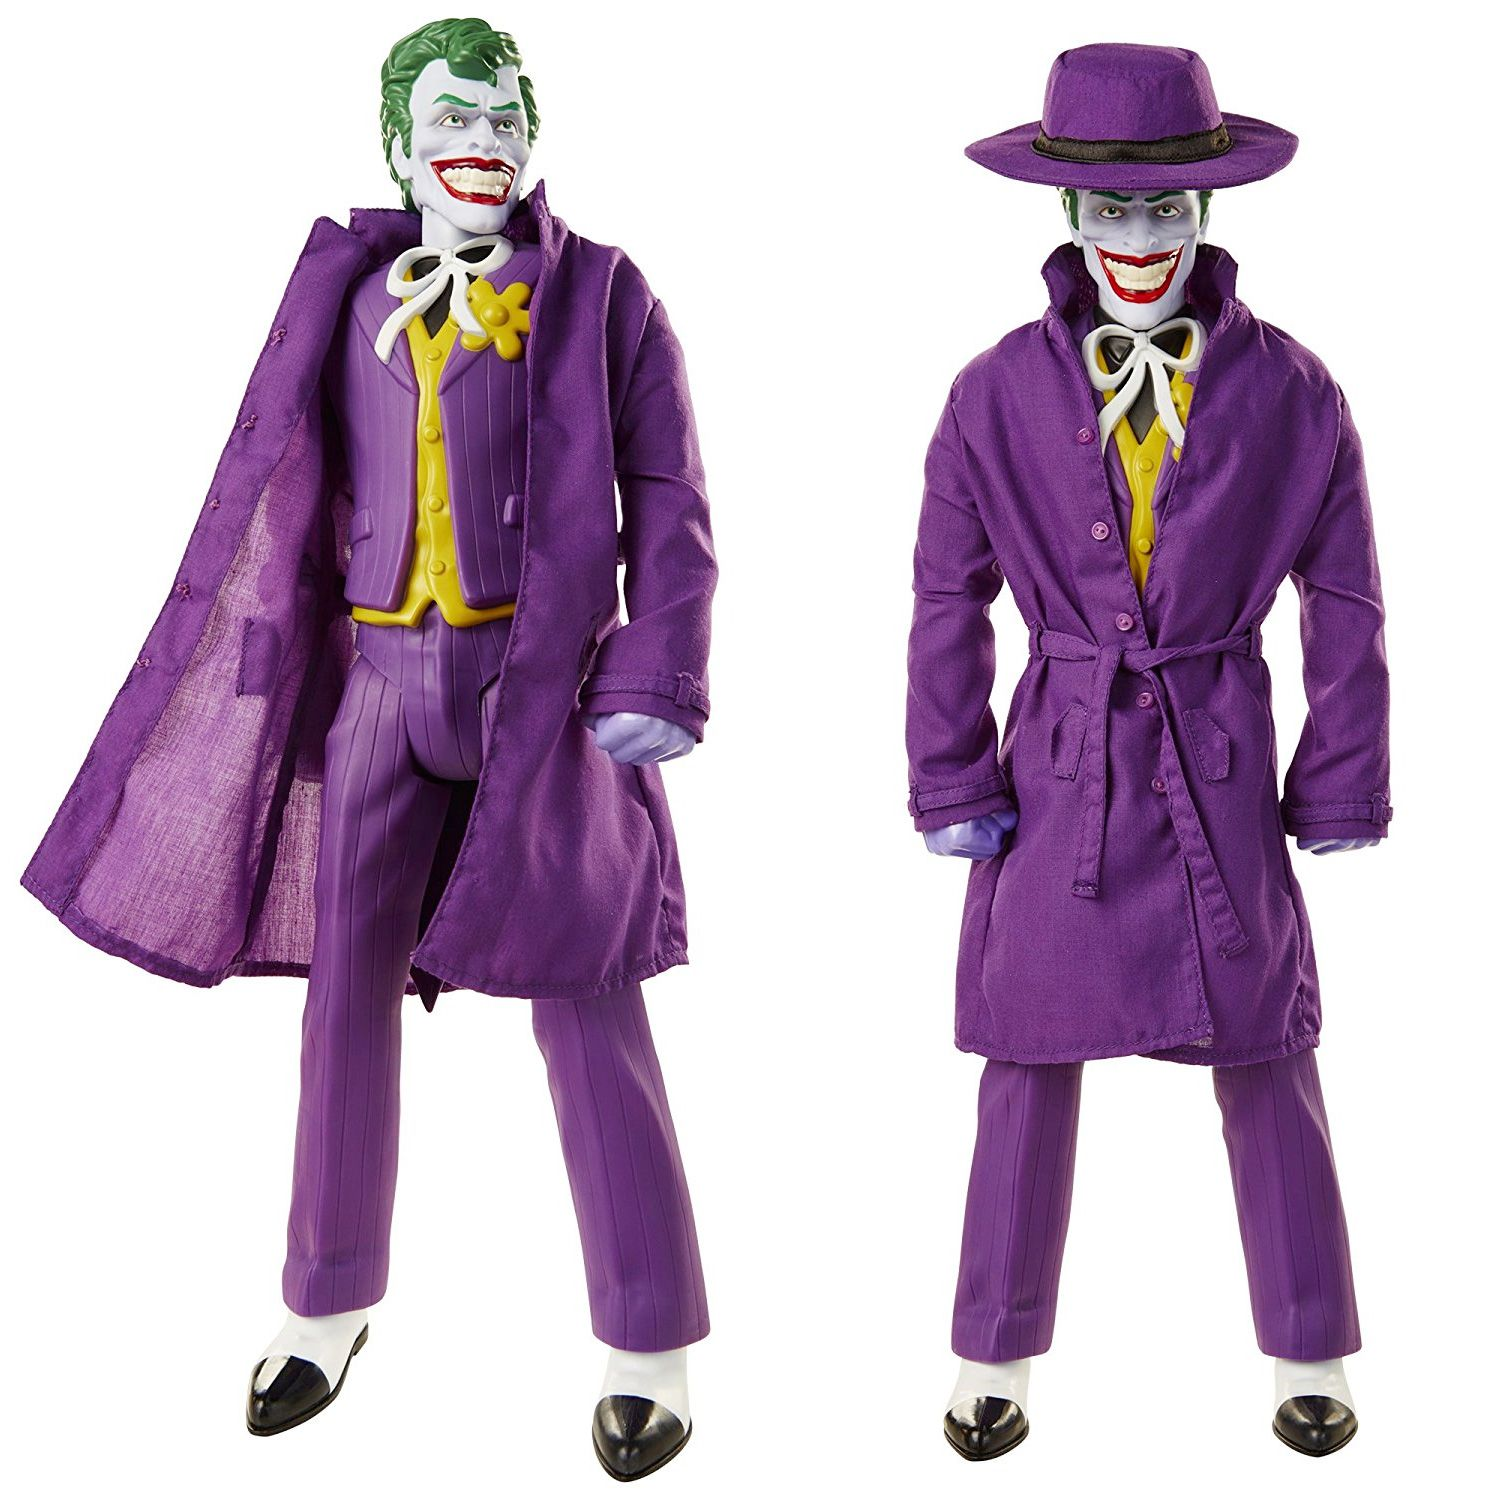 Coringa-Joker-Killing-Joke-20-Inch-DC-Comics-Tribute-Series-Big-Figs-Action-Figure-02